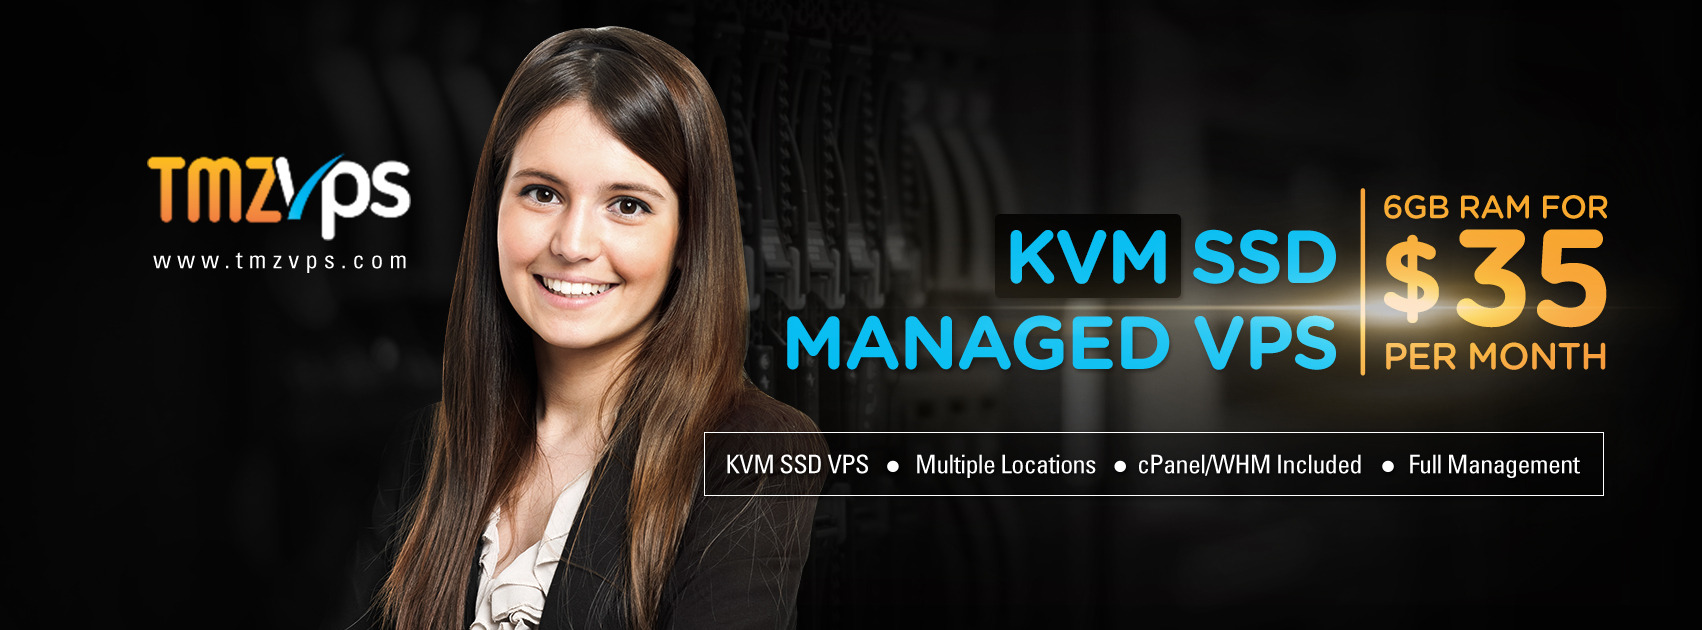 tmzVPS Managed KVM SSD VPS